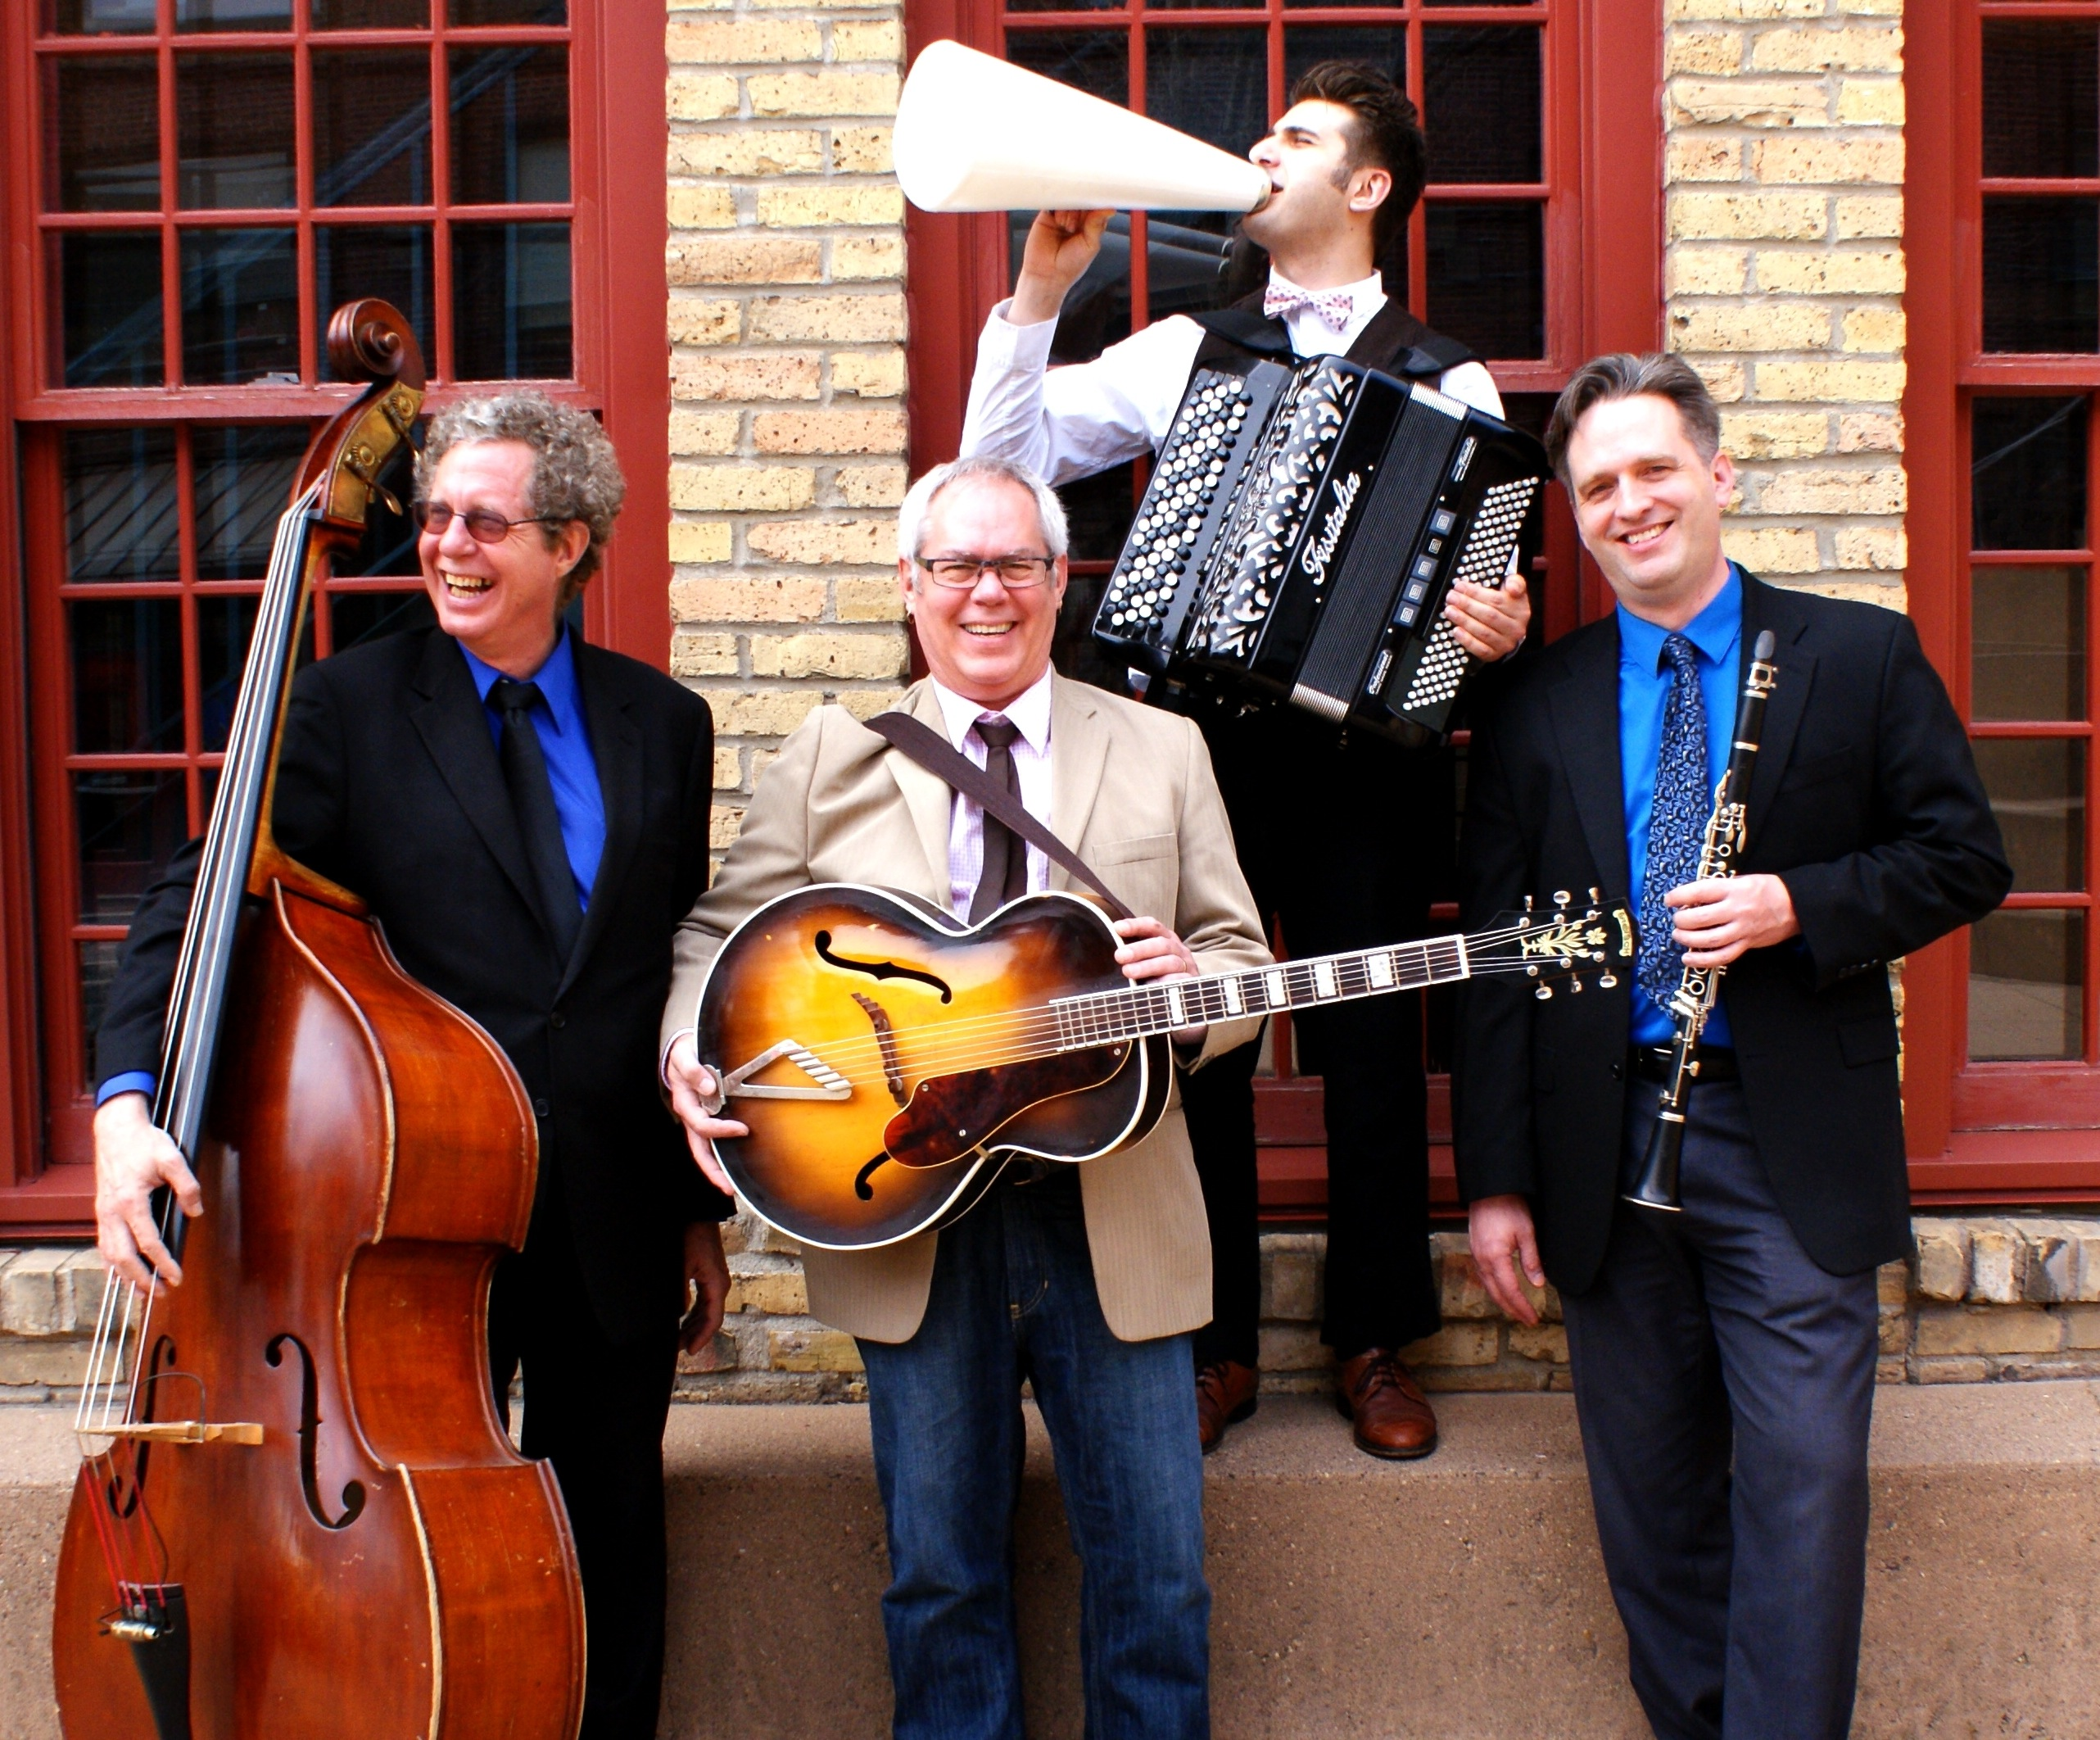 Patty and the Buttons Big Old-Style Vaudeville Show Slated for Nov 26